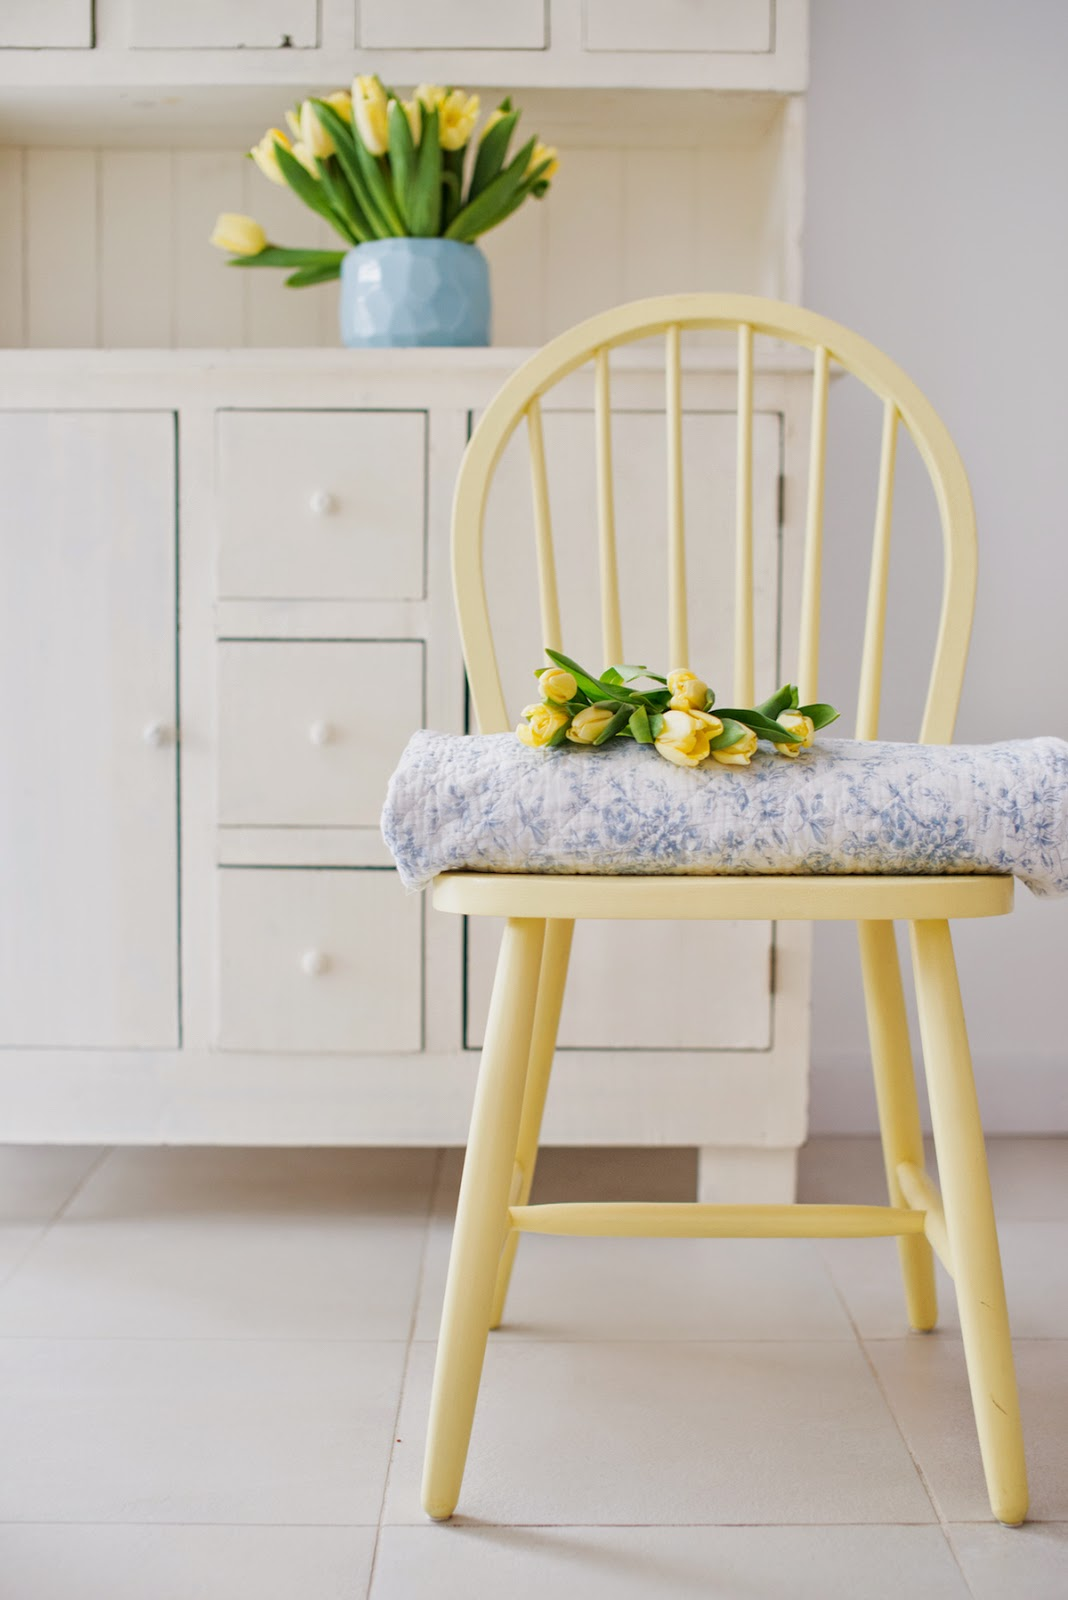 Lovely spring image from Minty House blog.